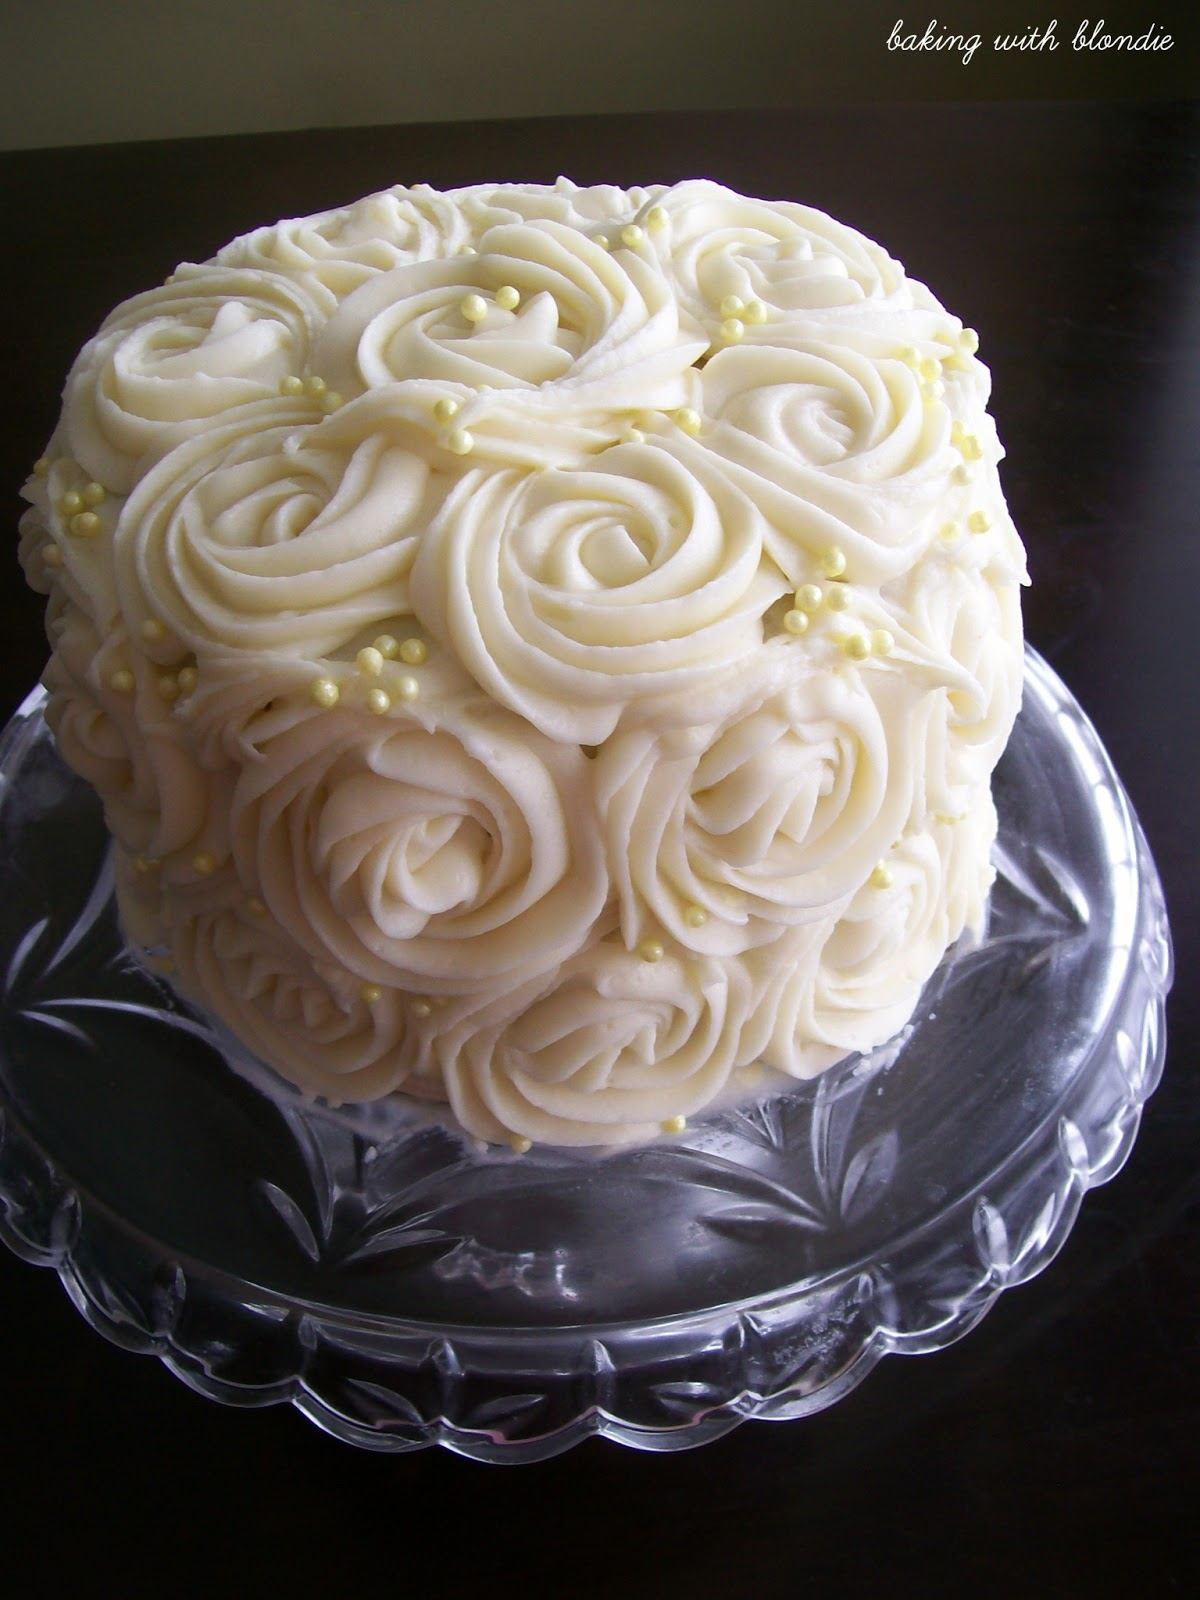 White Cream Cheese Frosting For Wedding Cakes